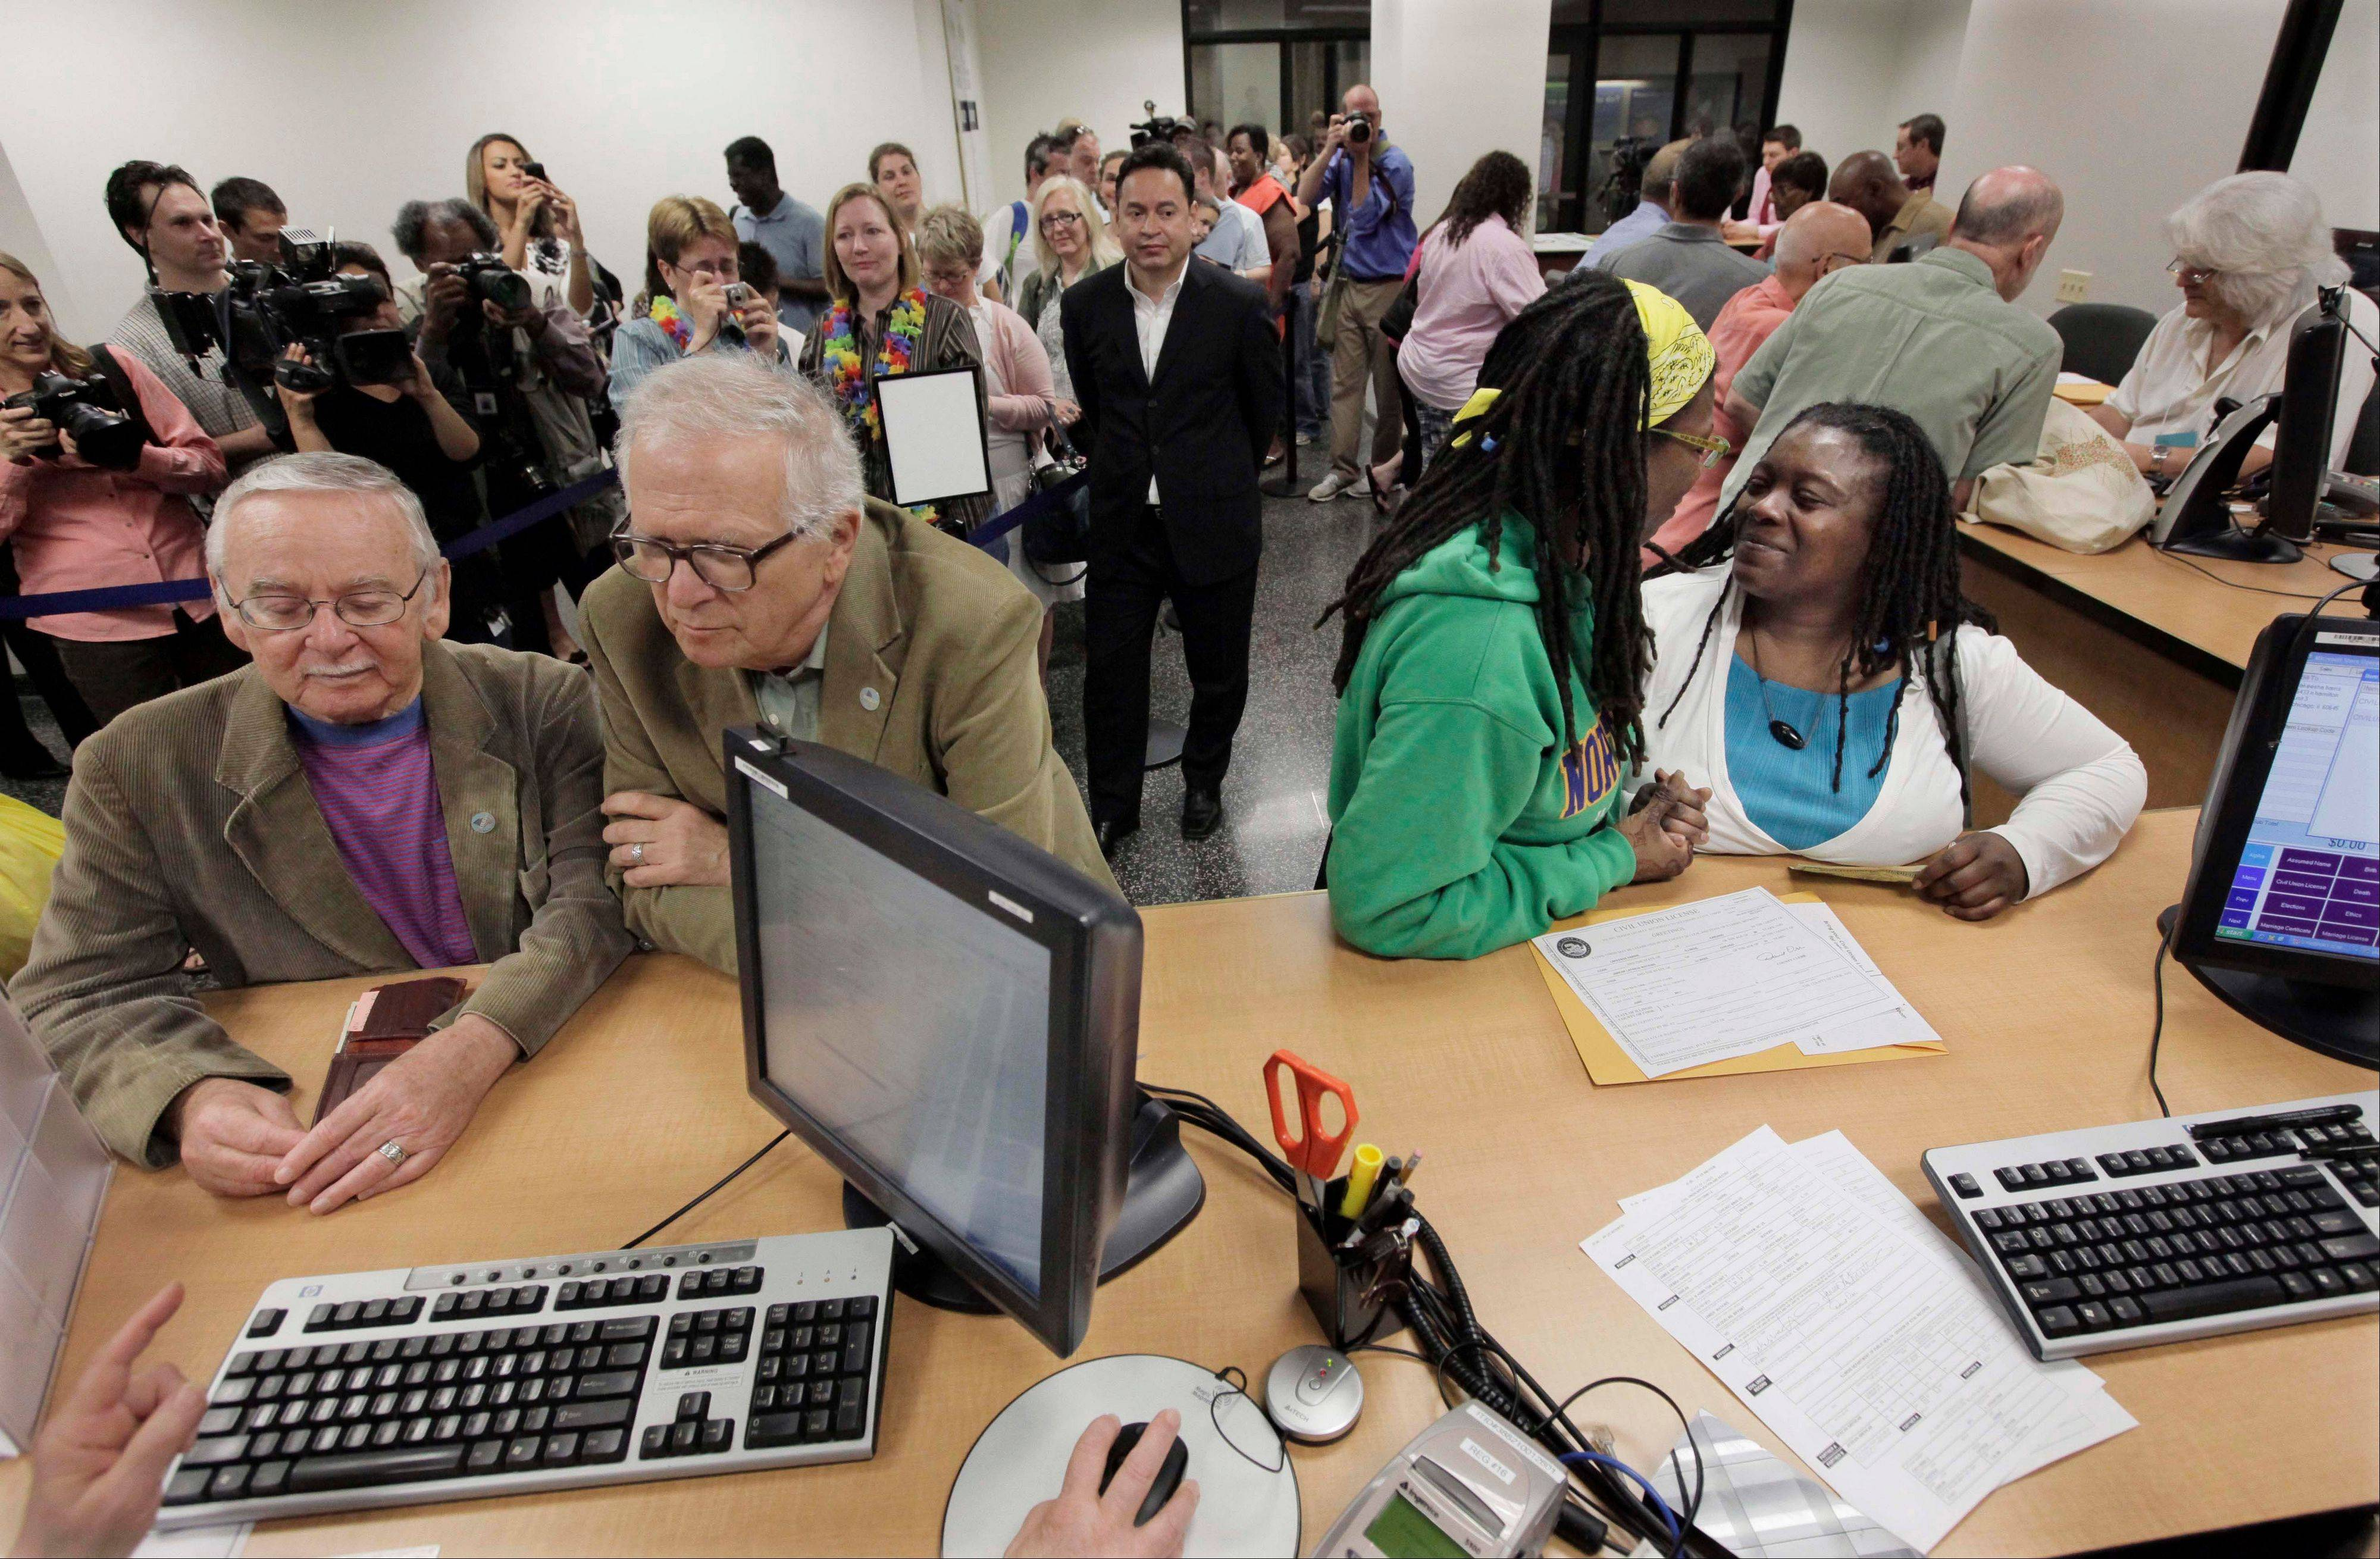 From left, Jim Darby, 79, and partner Patrick Bora, 73, and Janean Watkins, 37, and partner Lakeesha Harris, 36, wait in line at the Cook County Office of Vital Records to obtain civil union licenses on June 1, 2011.